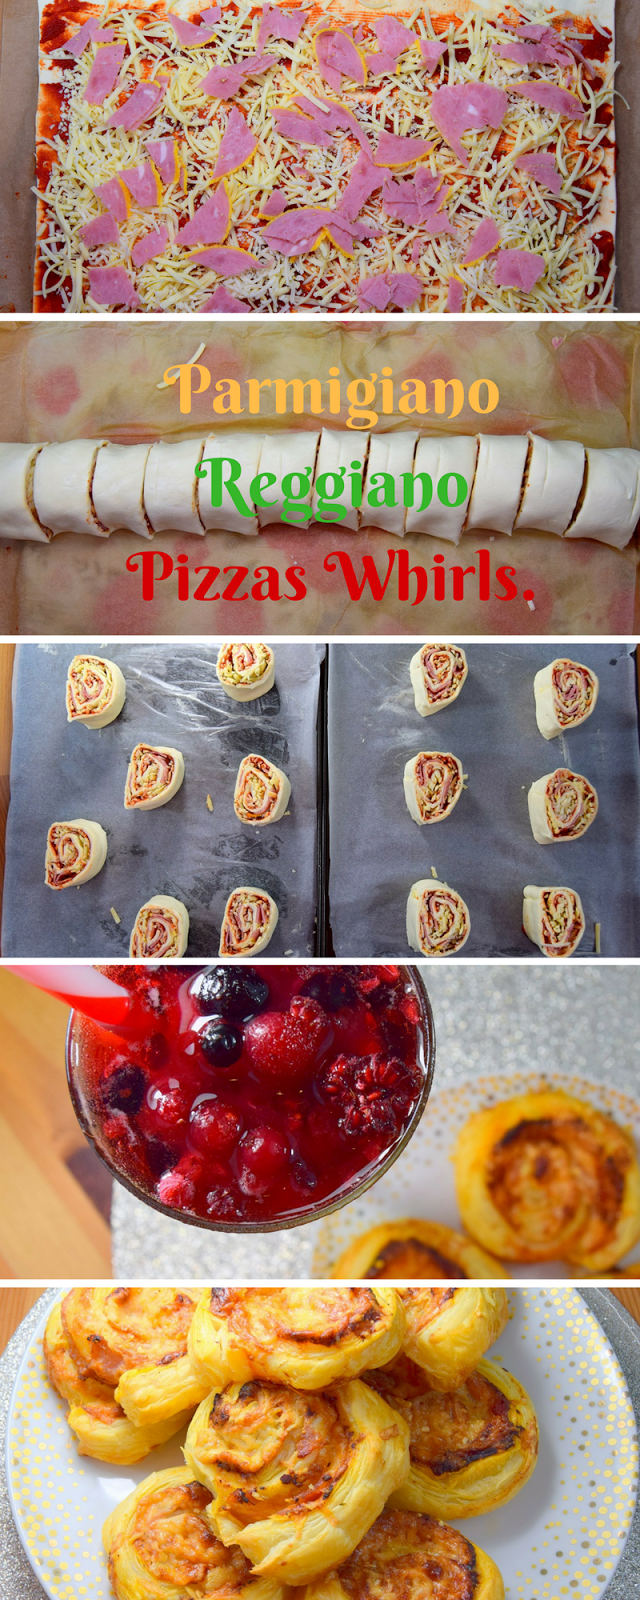 How To Make Parmigiano Reggiano Pizzas Whirls